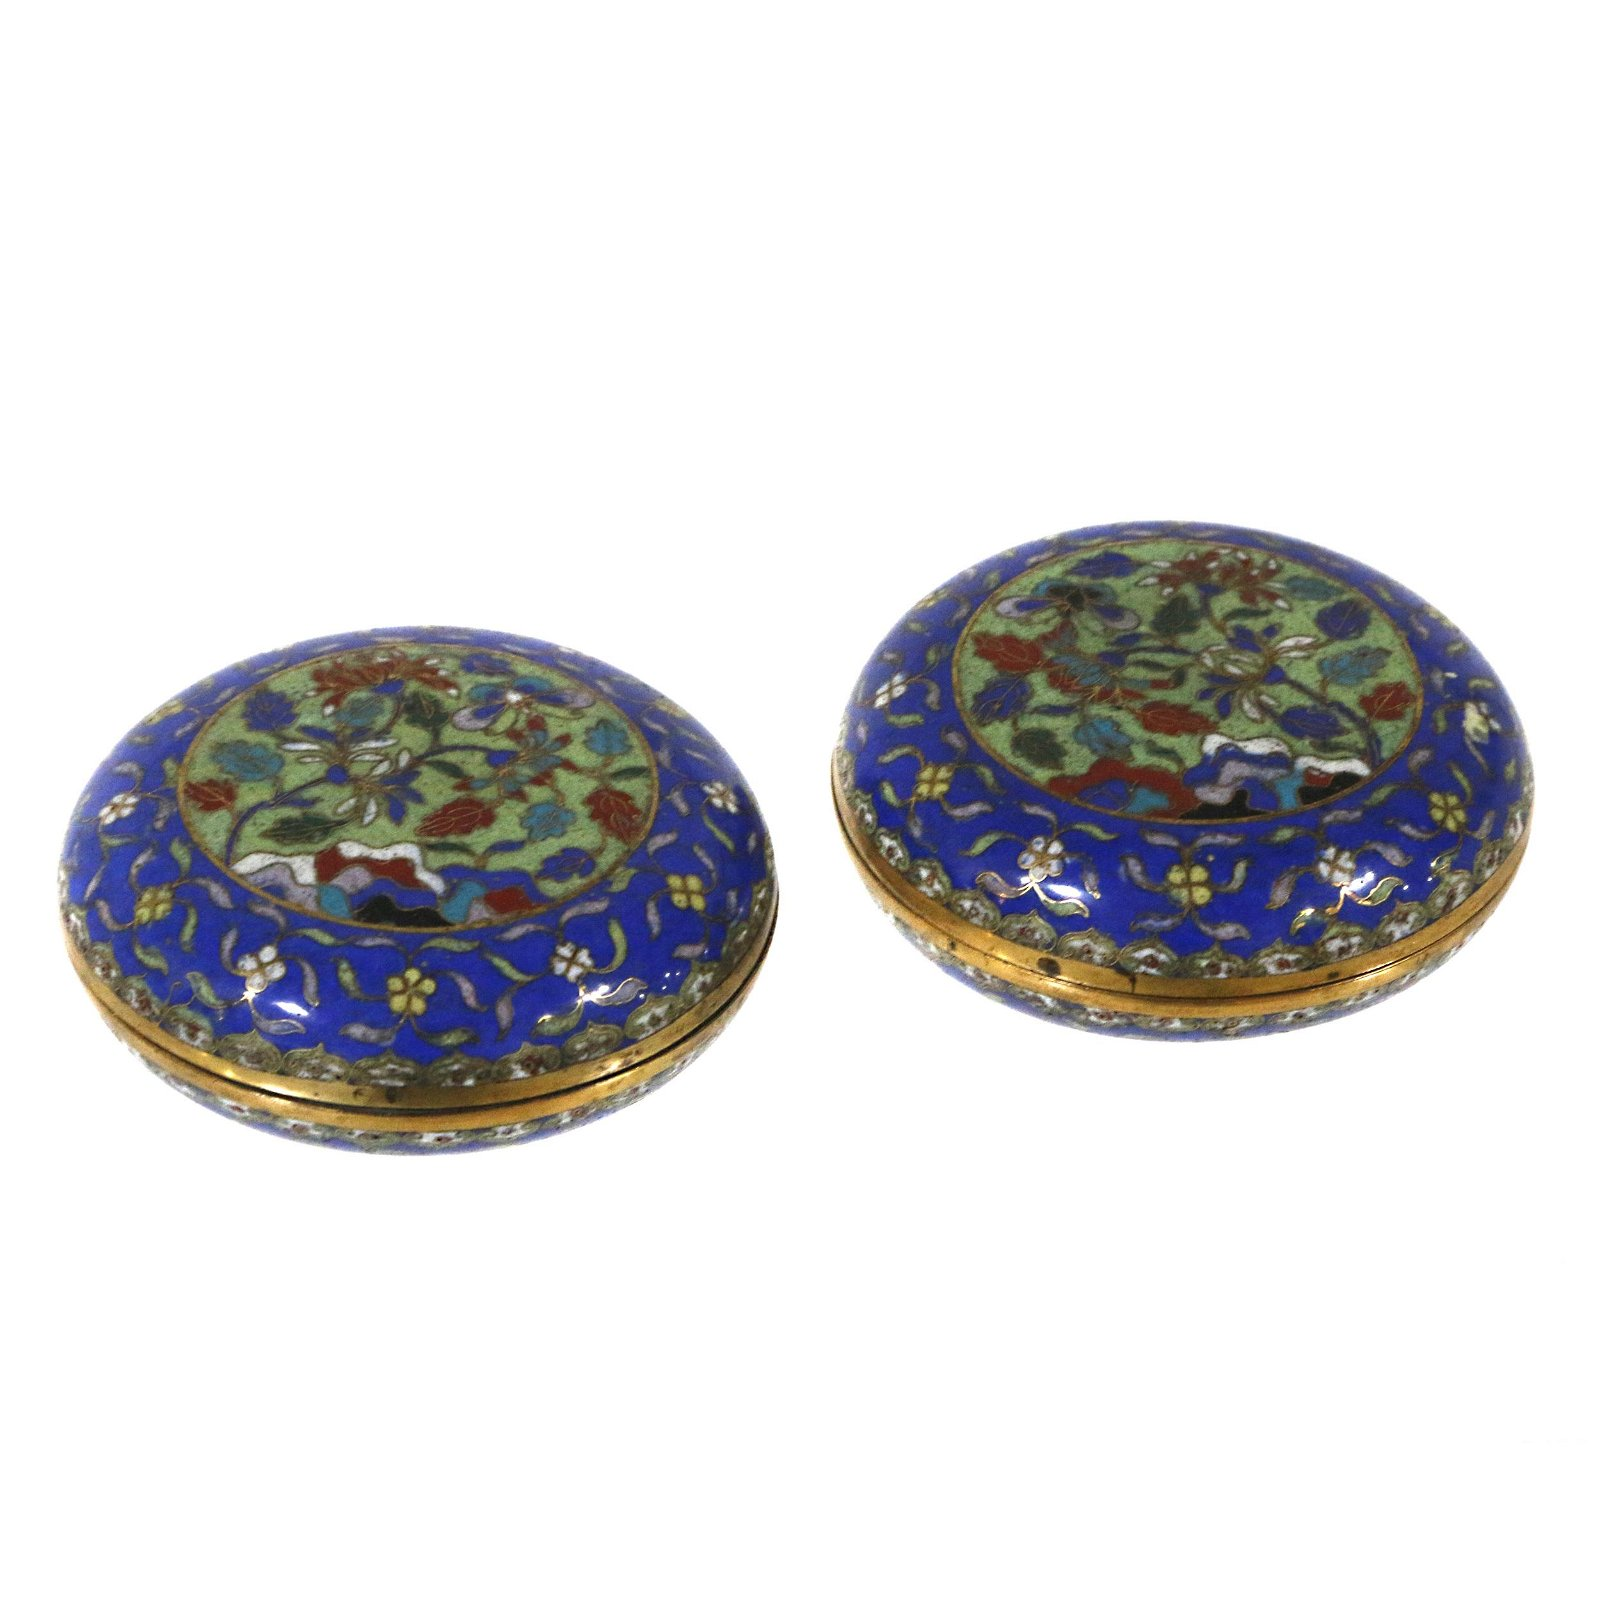 Pair of Cloisonne Enamel Boxes, 19th century